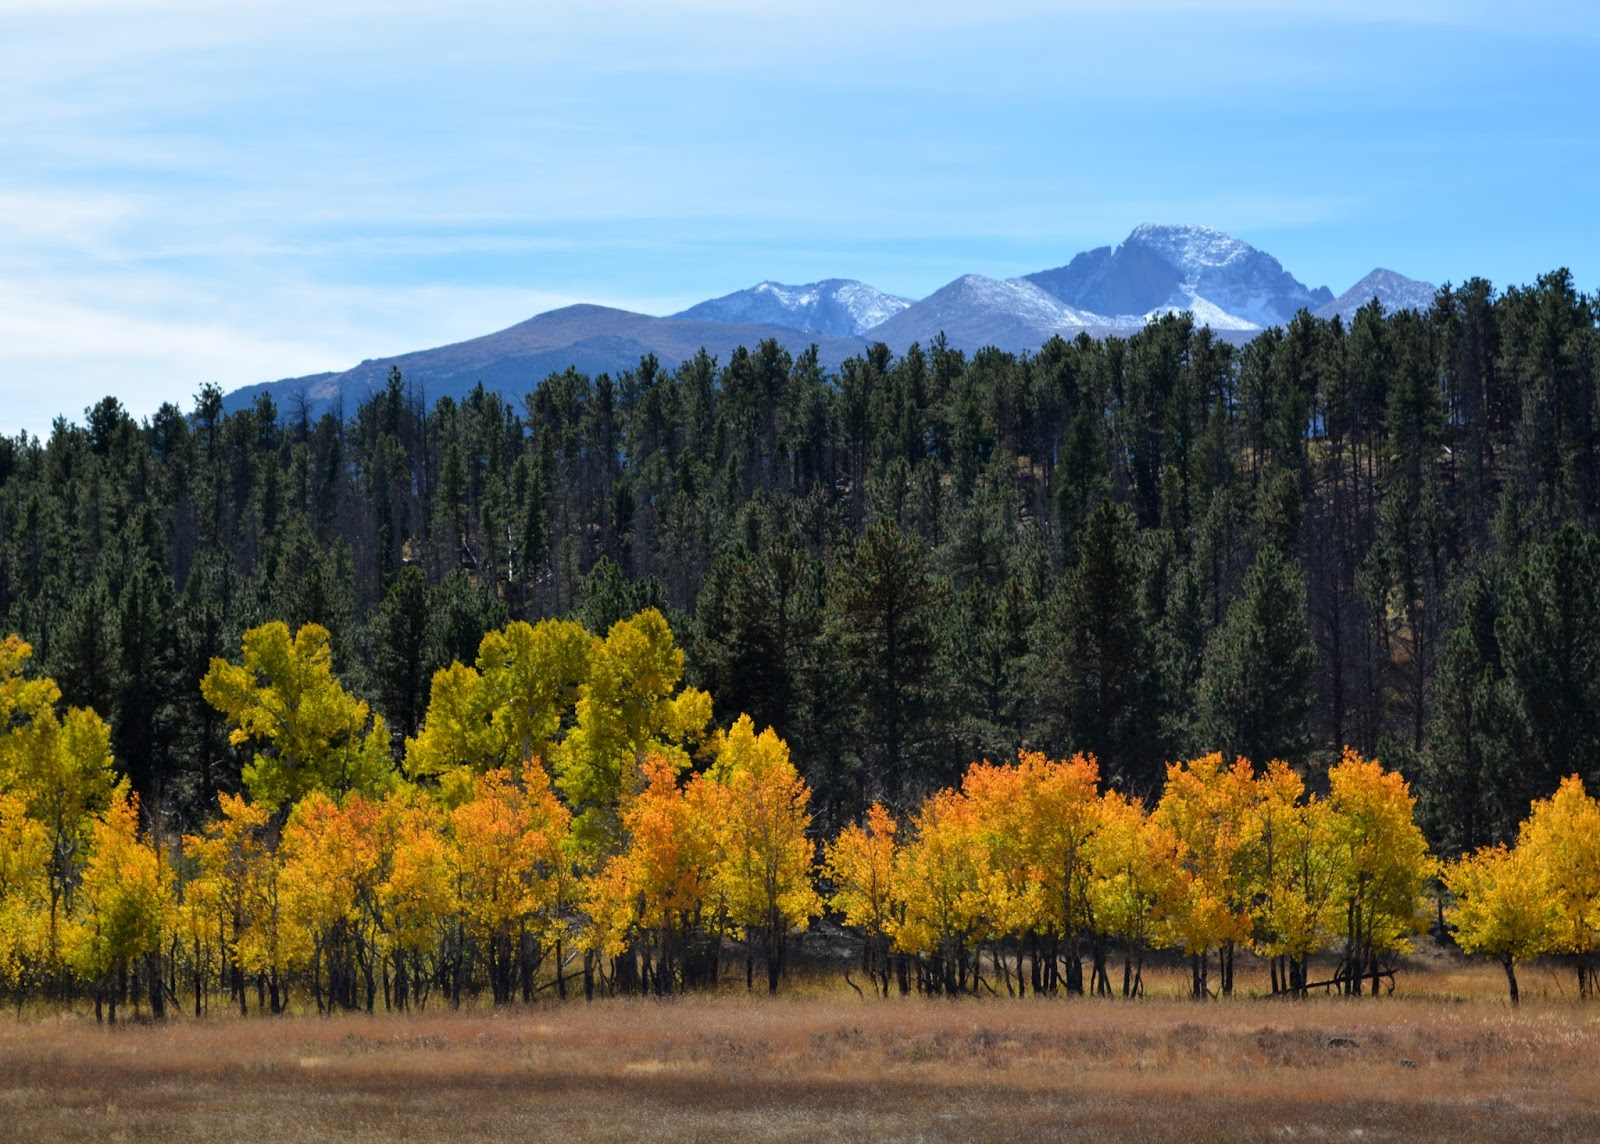 cozy birdhouse | beautiful fall foliage on the aspens at rocky mountain national park